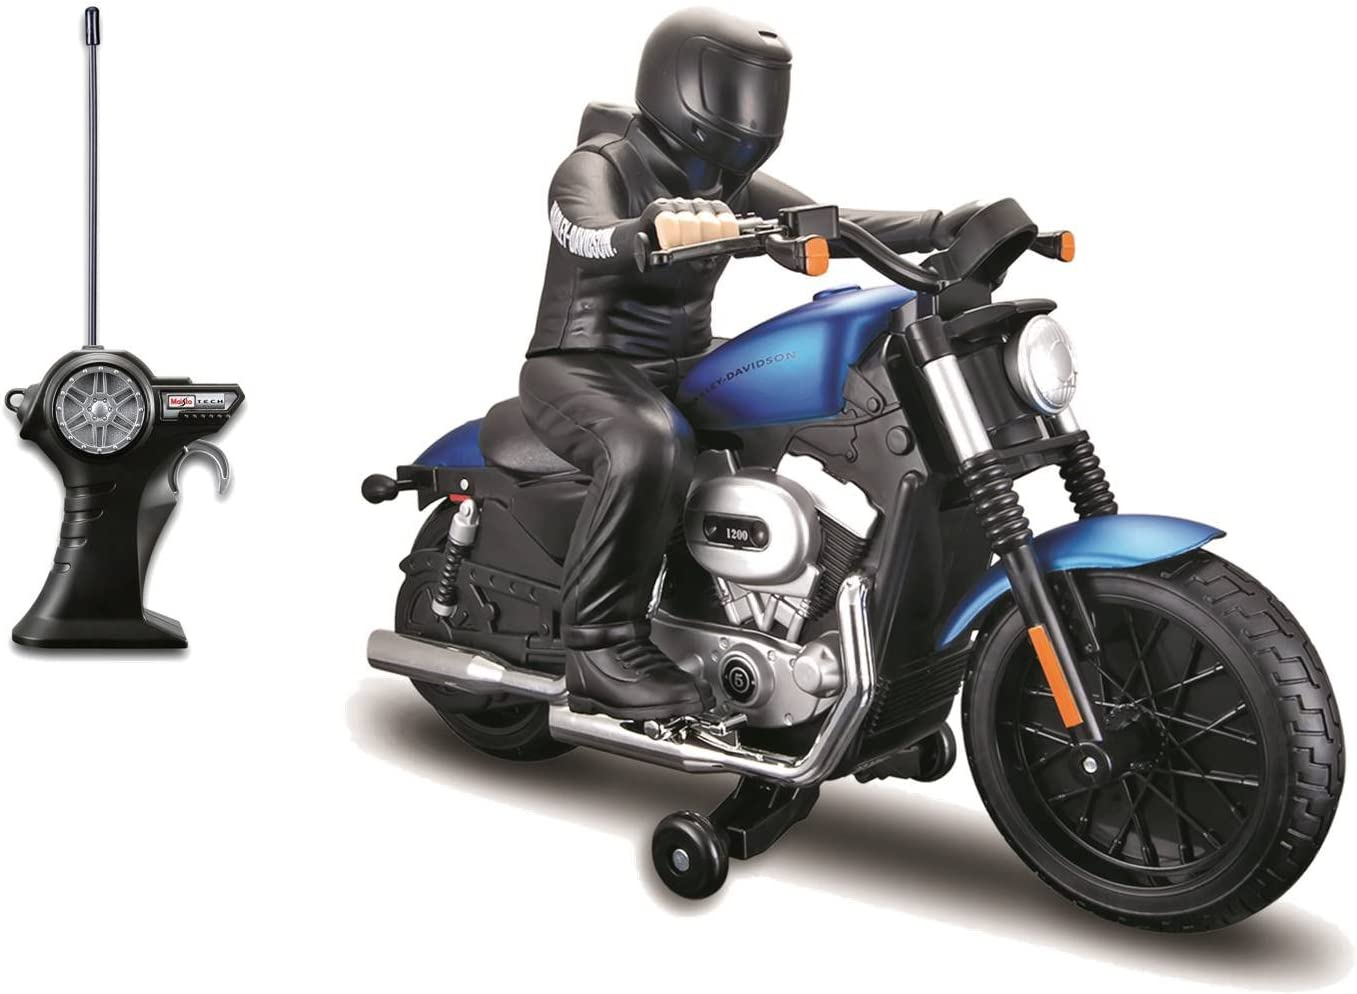 Top 10 Best Remote Control Motorcycles (2020 Reviews & Buying Guide) 10